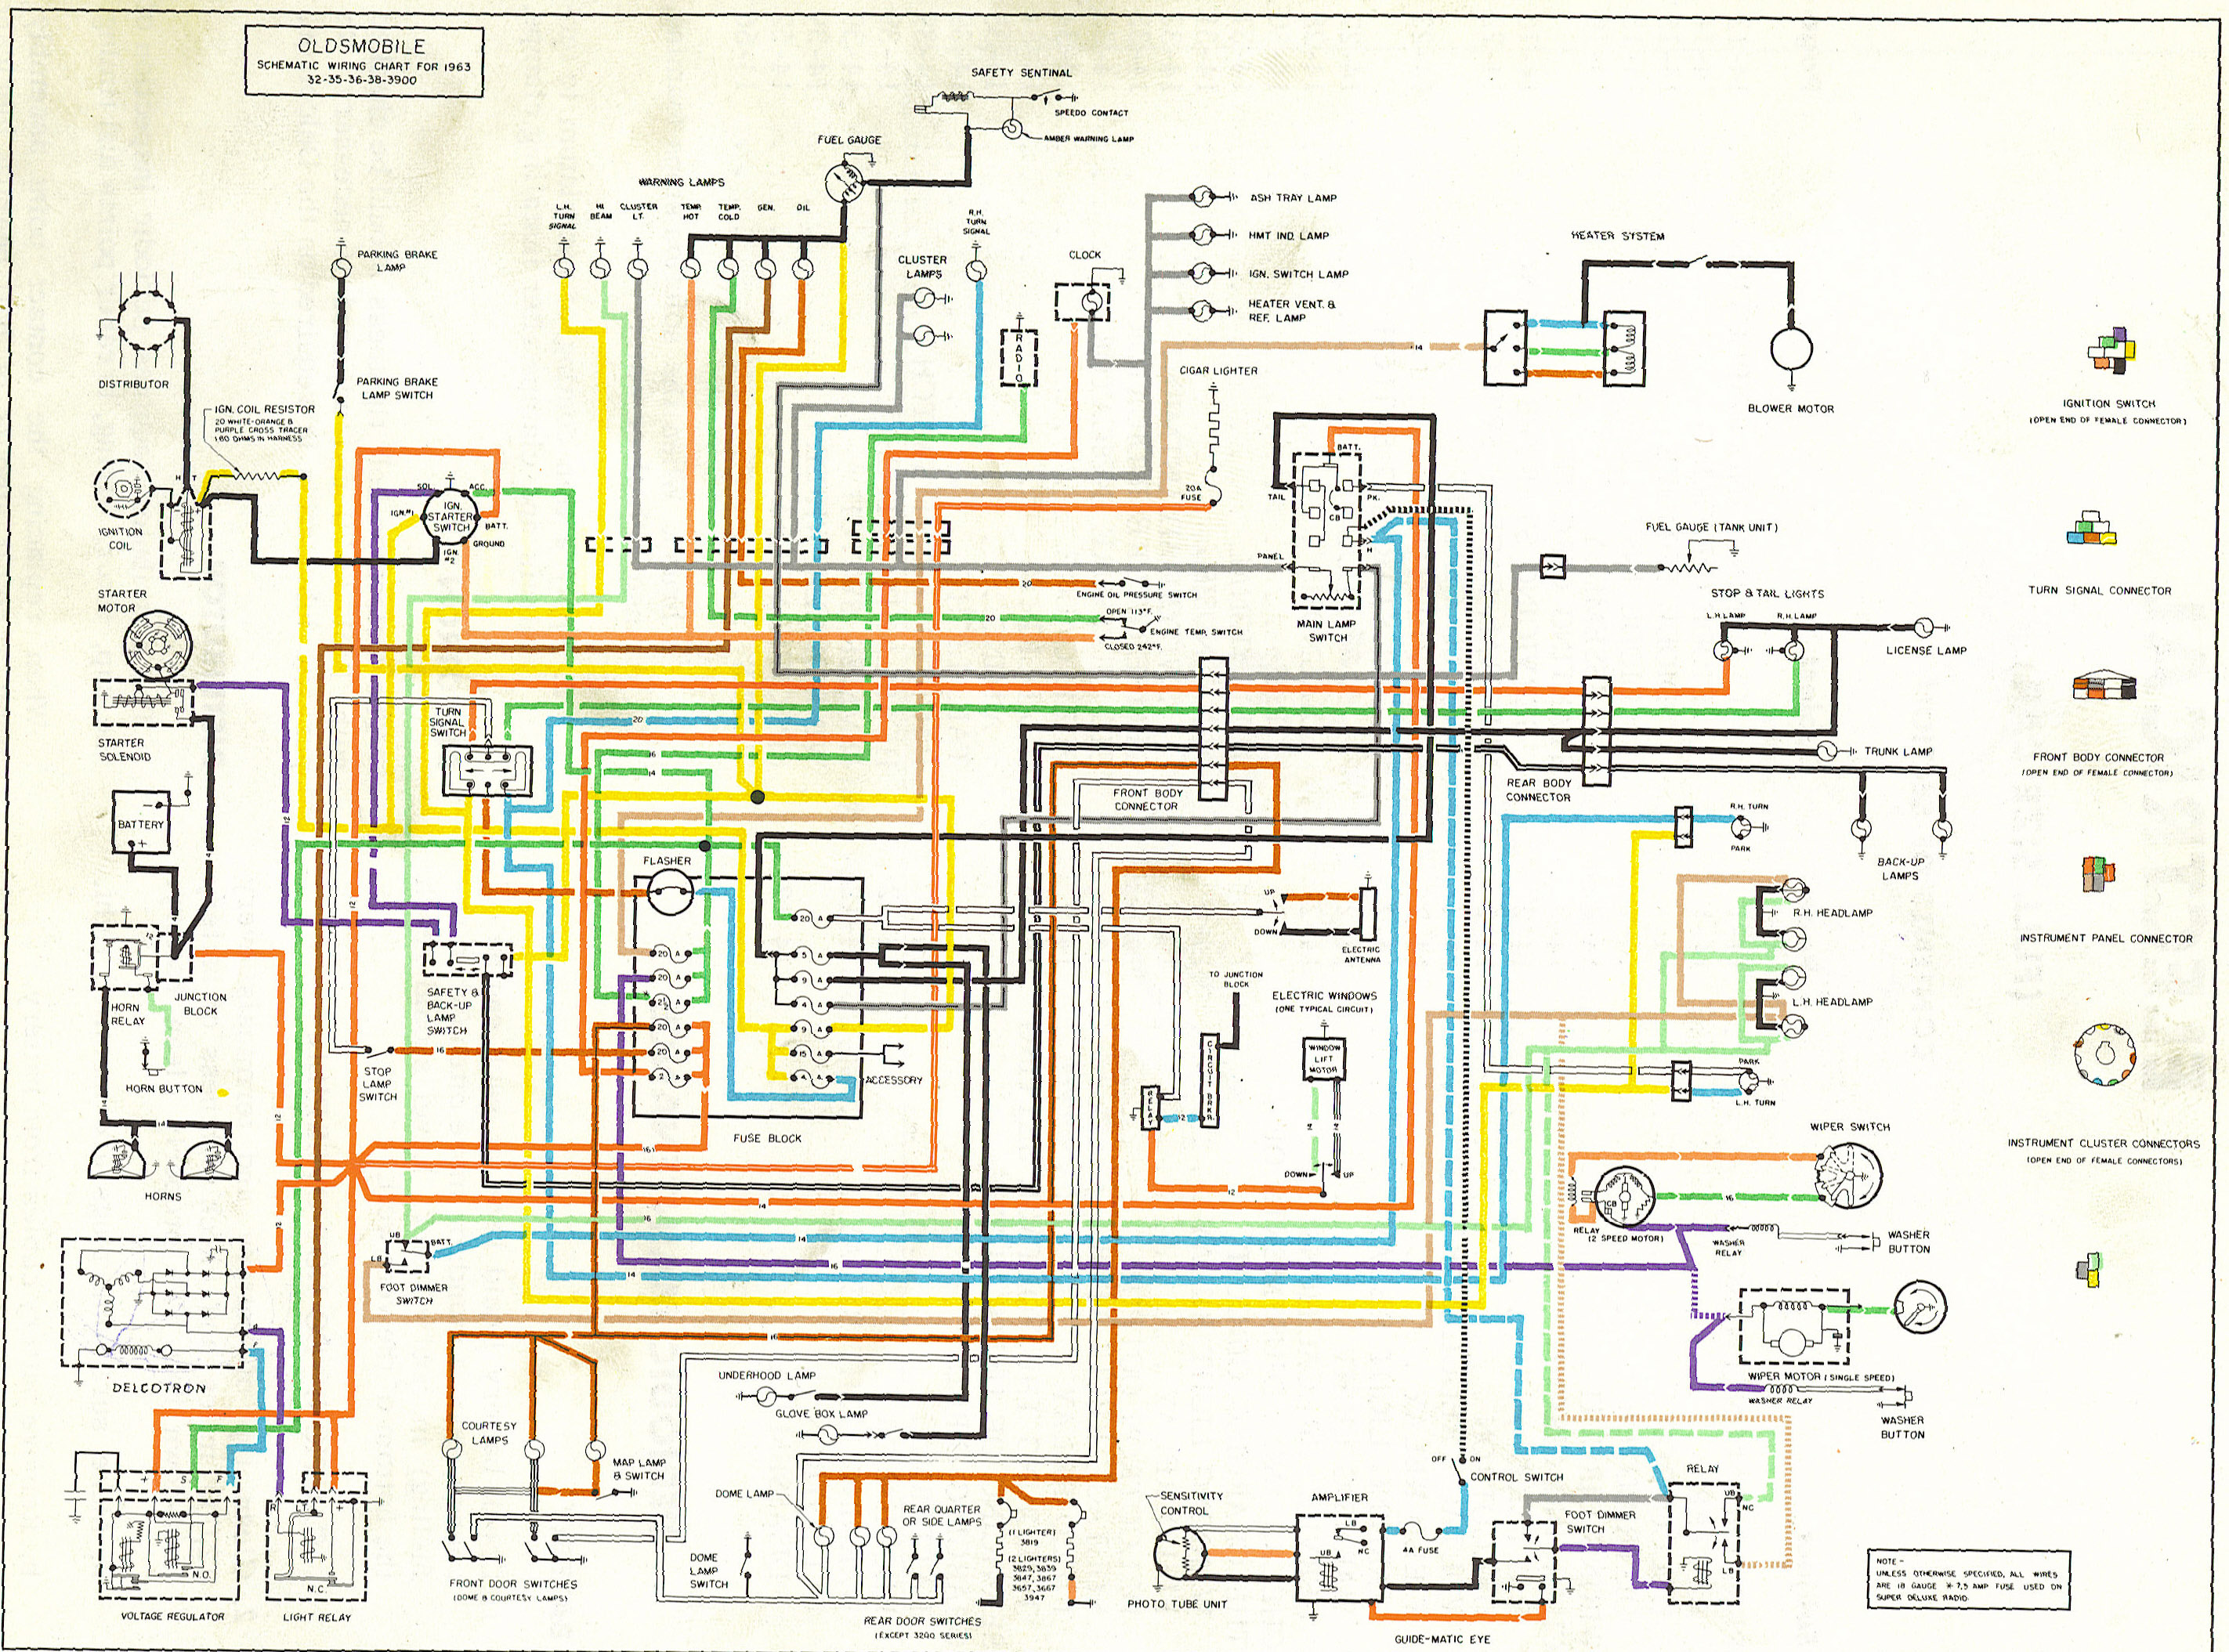 Olds 442 1968 Wiring Harness Diagram Not Lossing 1985 Toyota Pickup Engine 67 Camaro For Rear Free Image Gm Yamaha